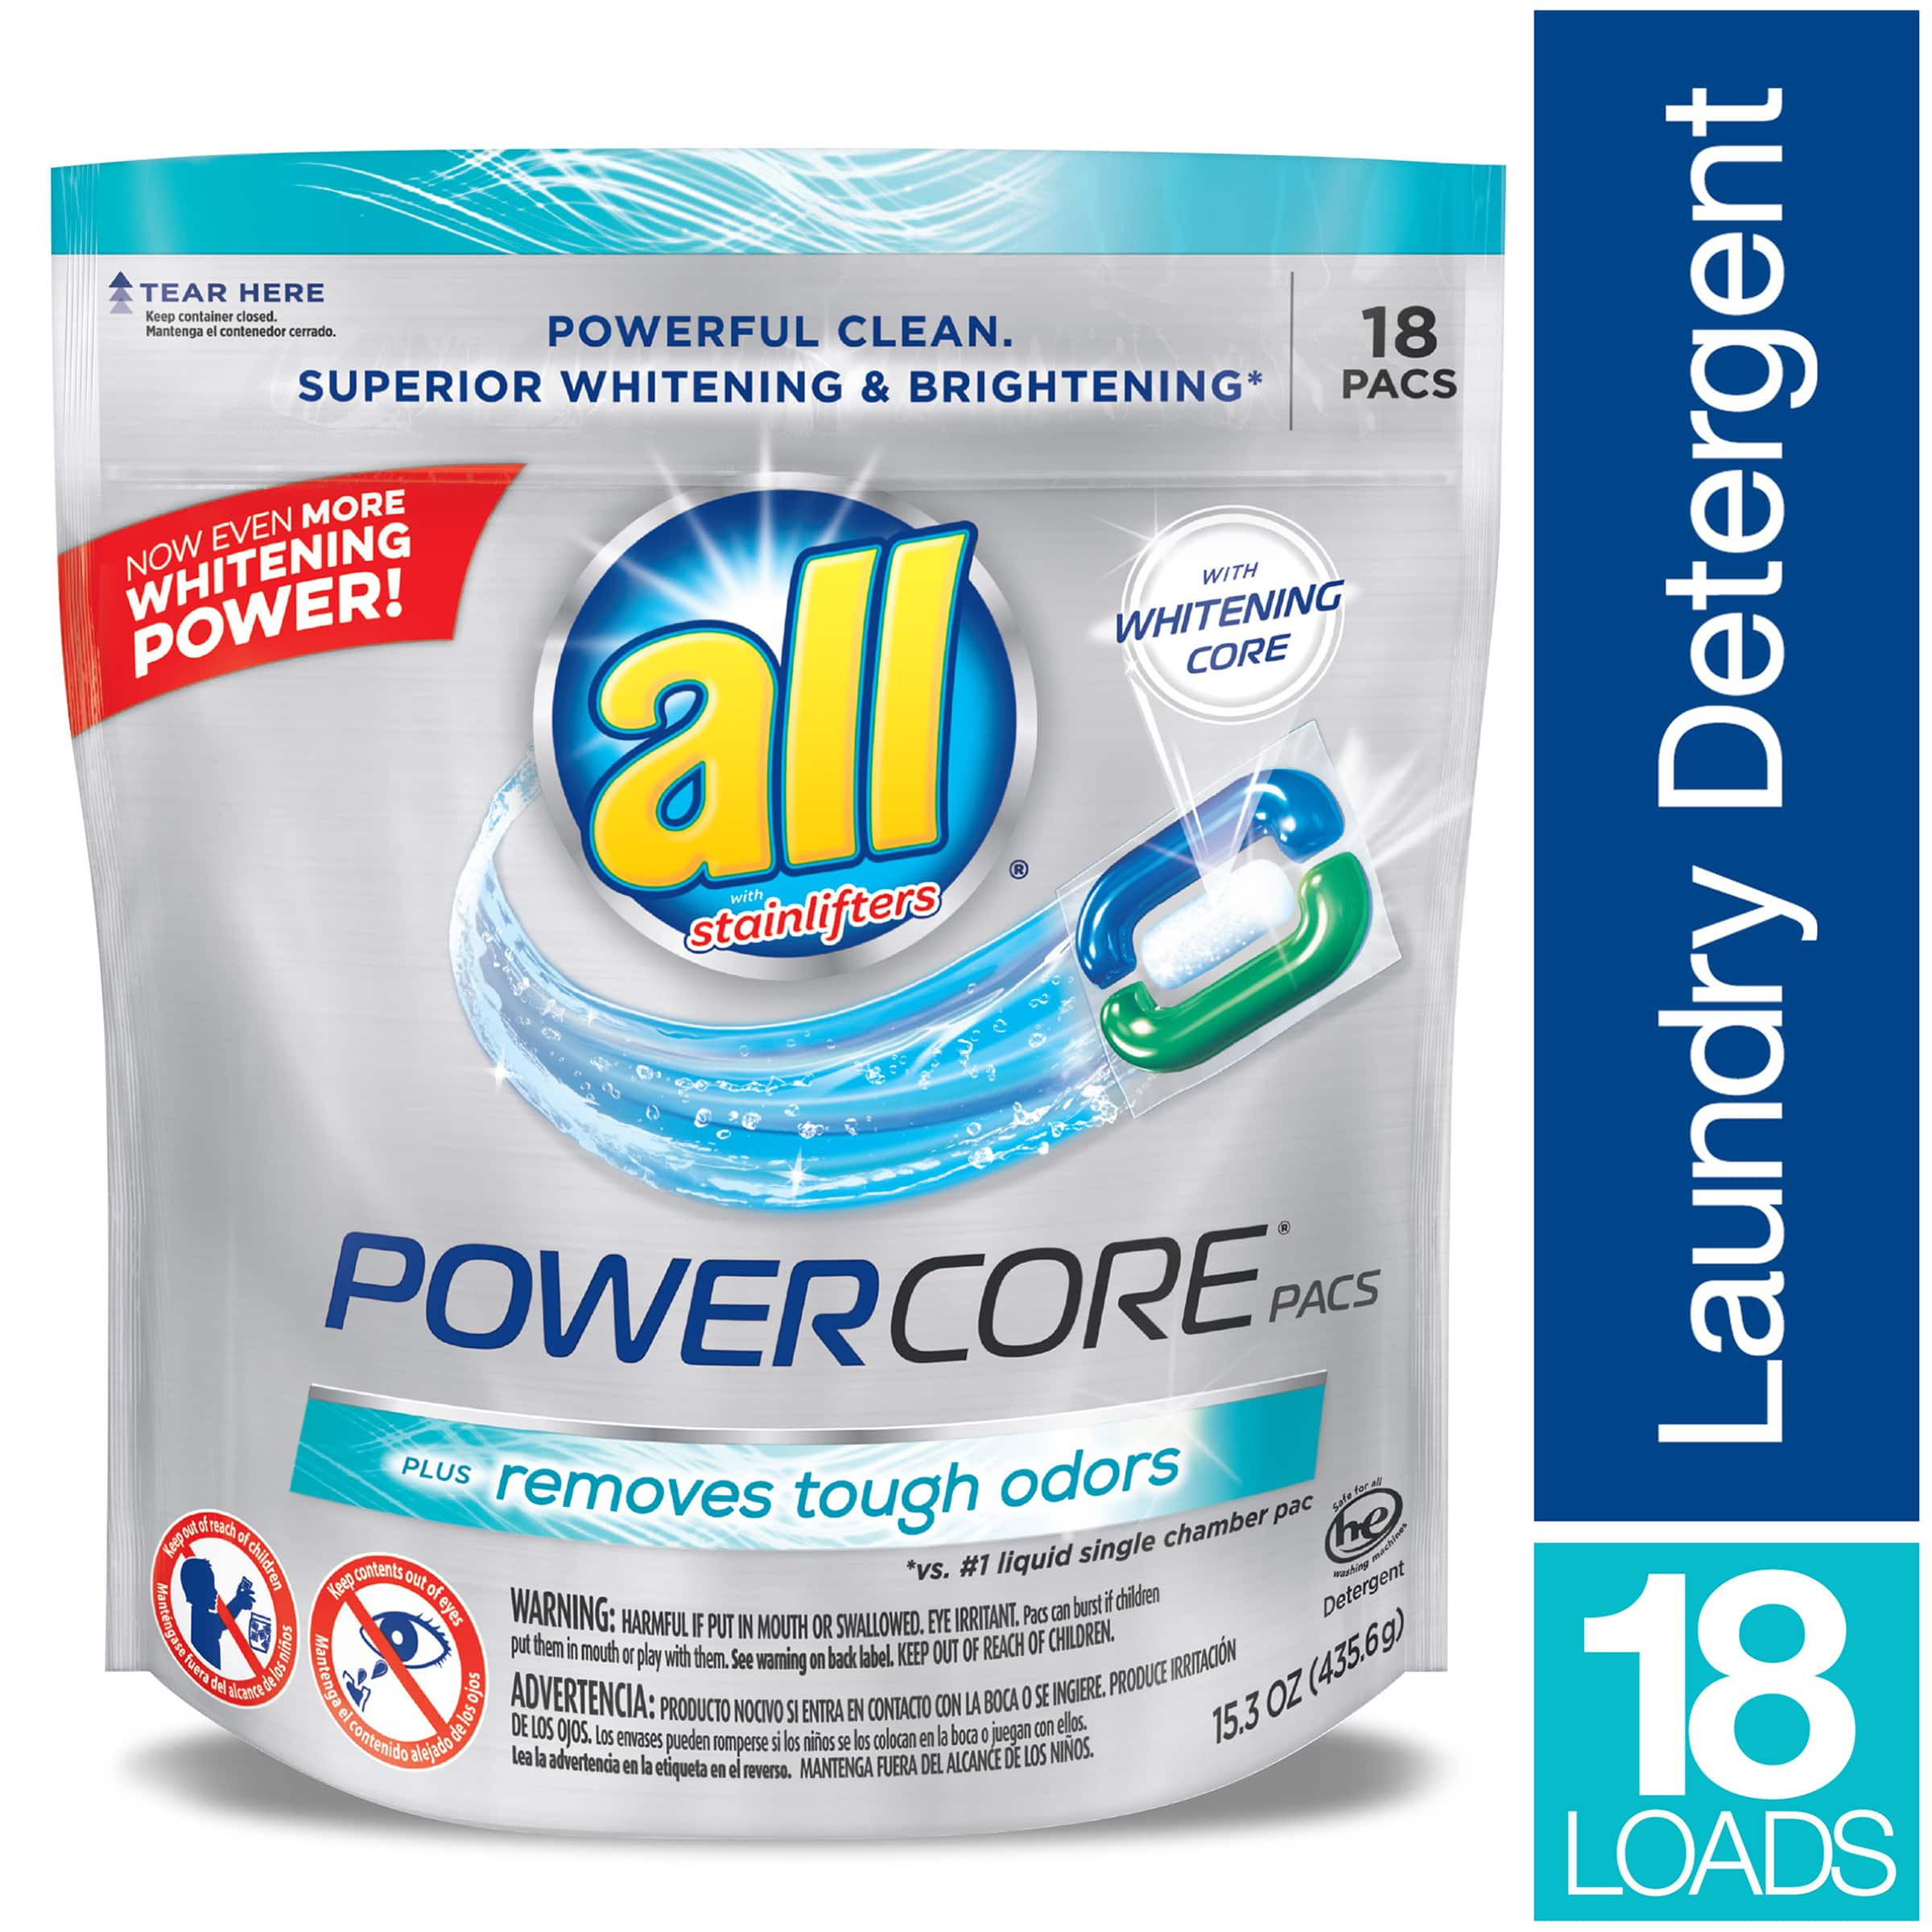 18-Ct All Powercore Pacs Laundry Detergent $2.99 + free shipping with prime $3.24